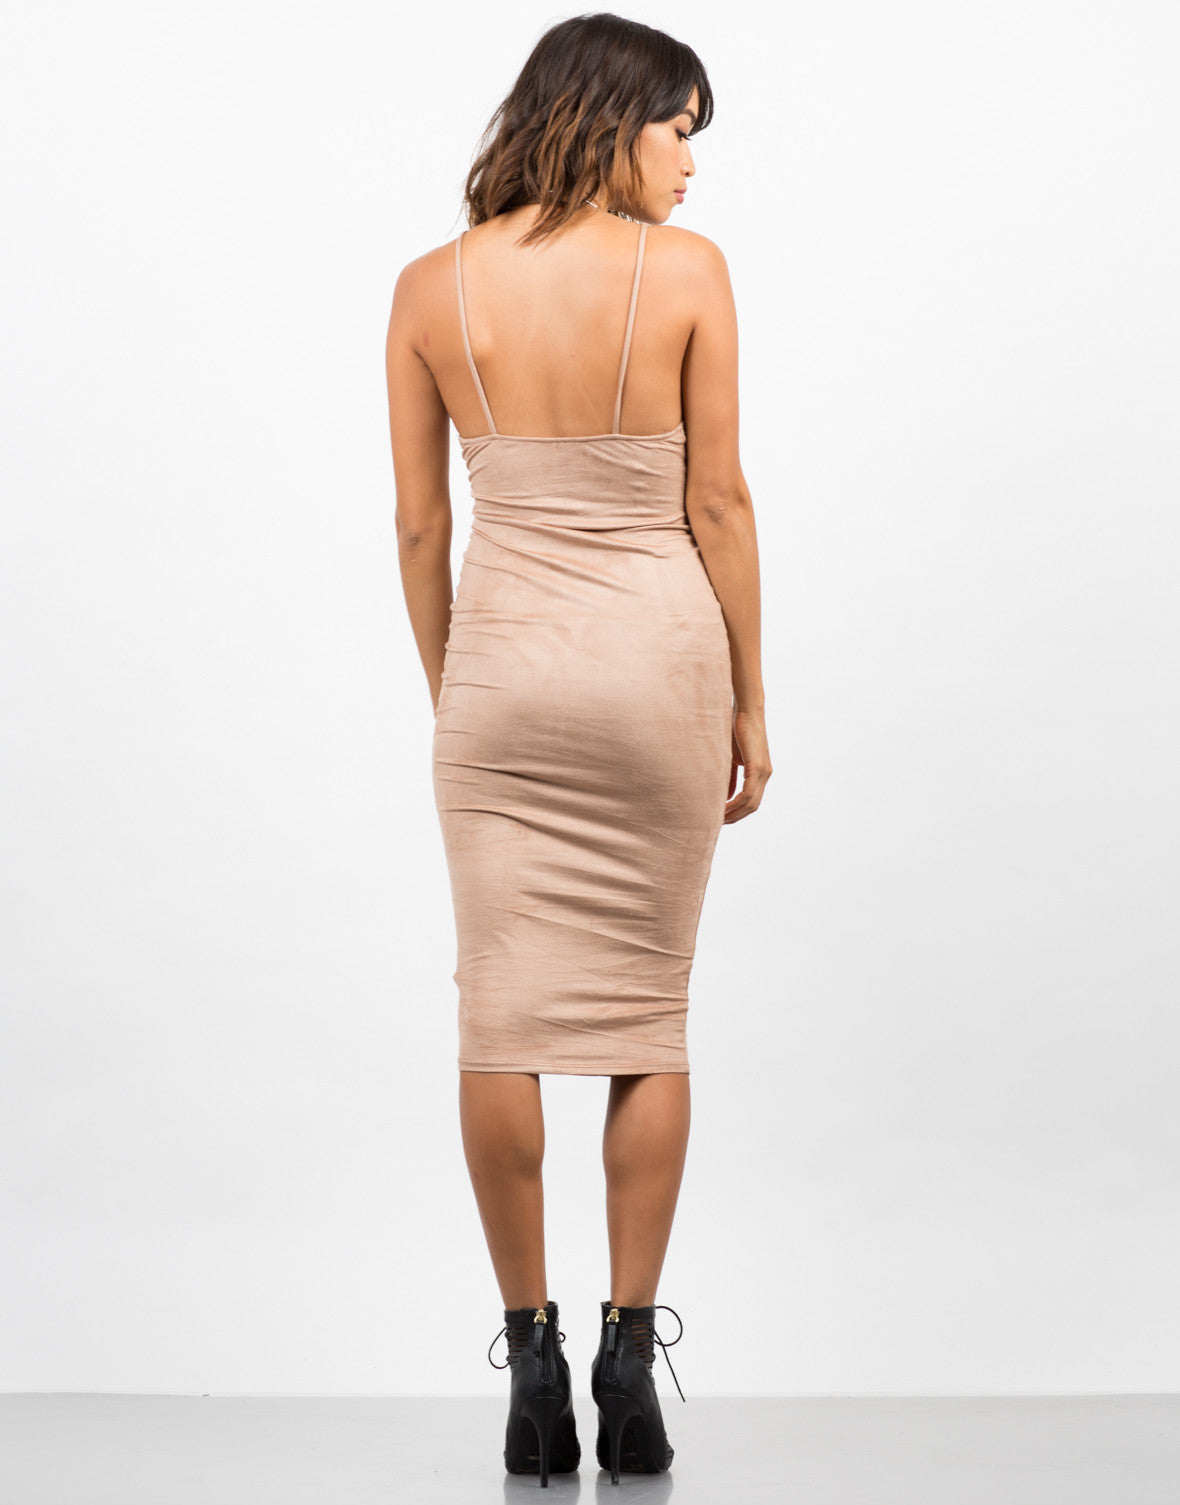 Back View of Suede Slip Dress